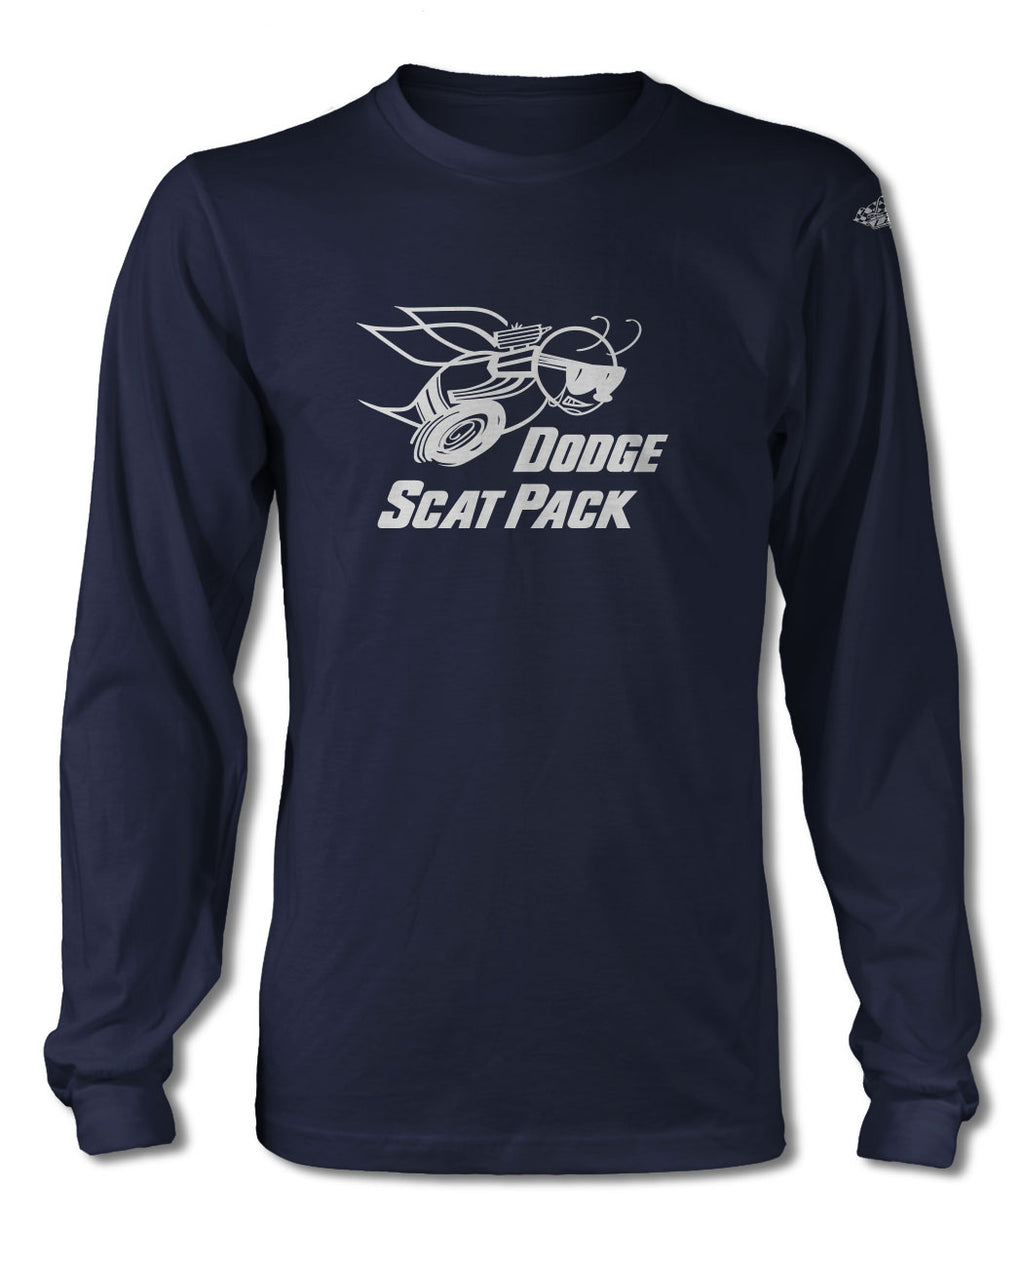 Dodge Scat Pack 1968 Emblem T-Shirt - Long Sleeves - Emblem